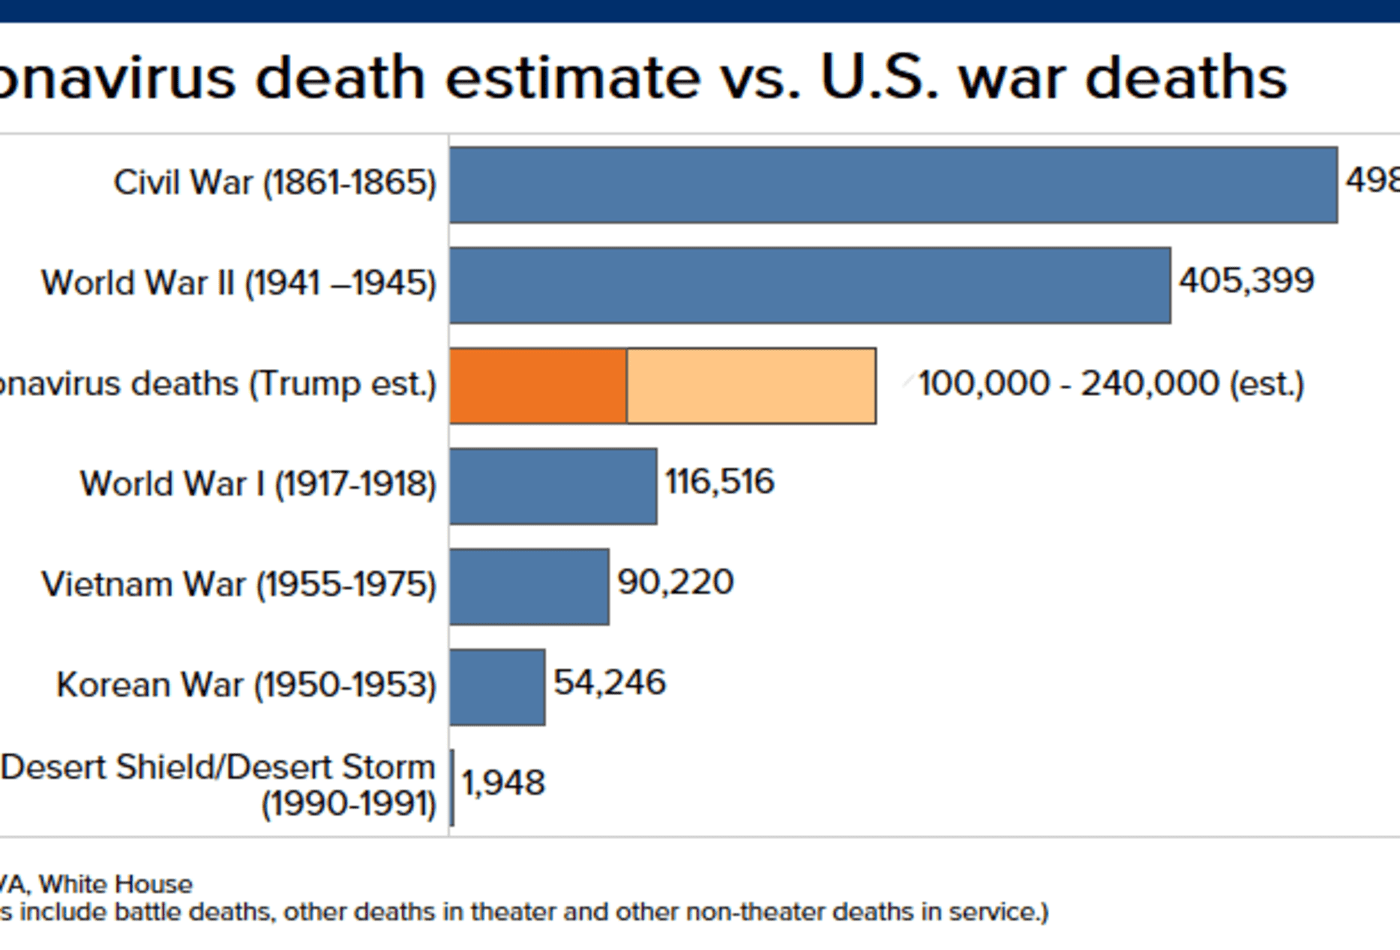 Coronavirus could kill more Americans than WWI, Vietnam or Korean wars, White House projection shows